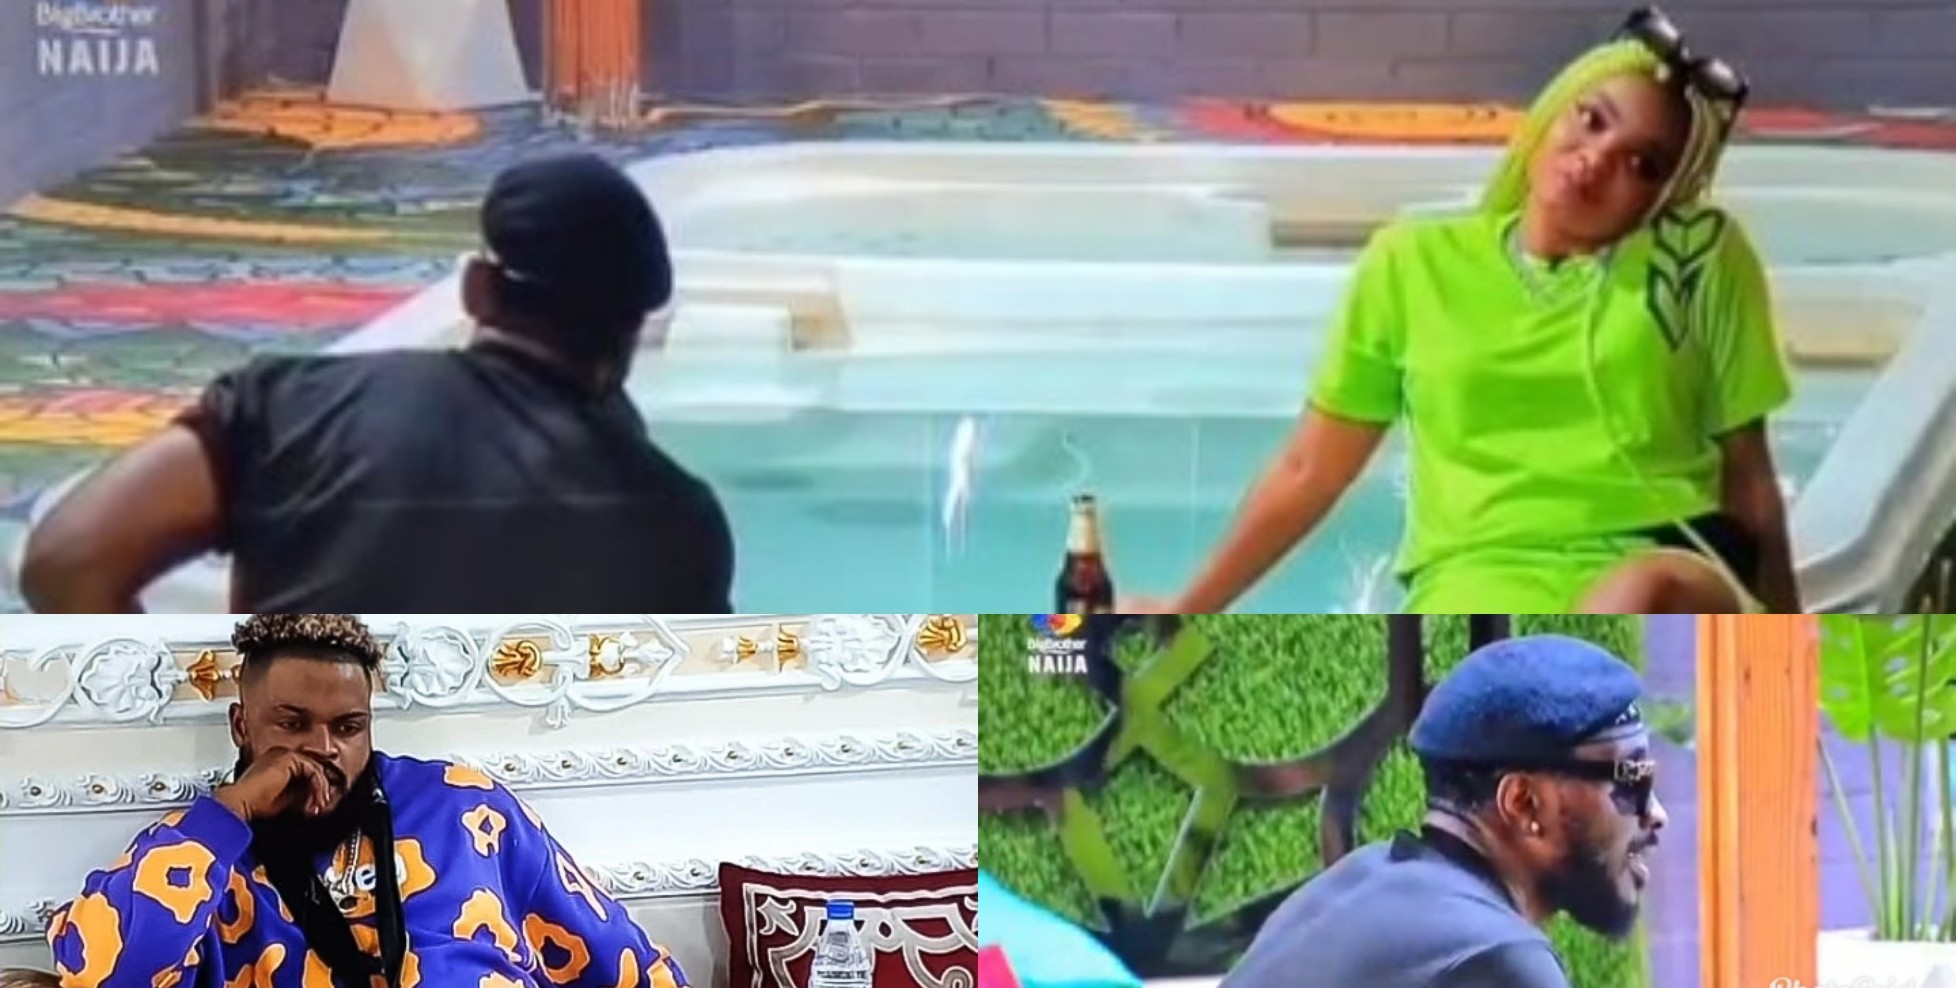 VIDEO: Whitemoney is a good man, go for him outside the house – Pere tells Queen